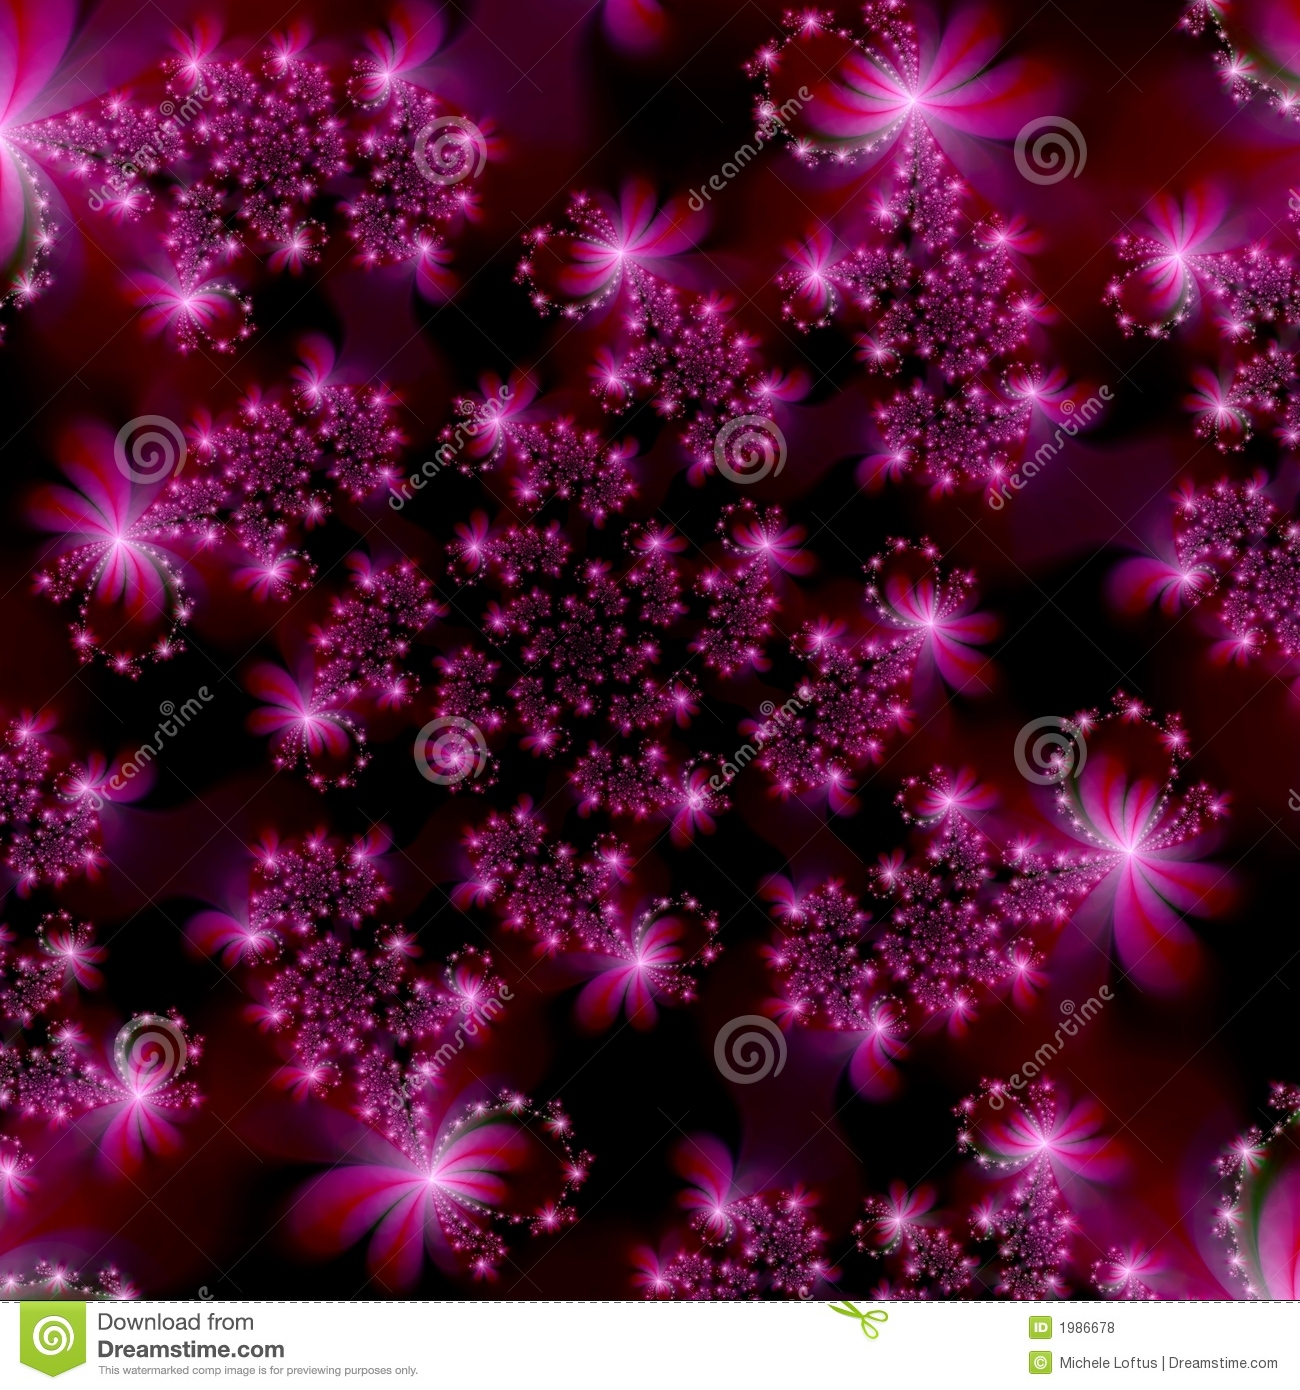 magenta pink fractal stars in space abstract background